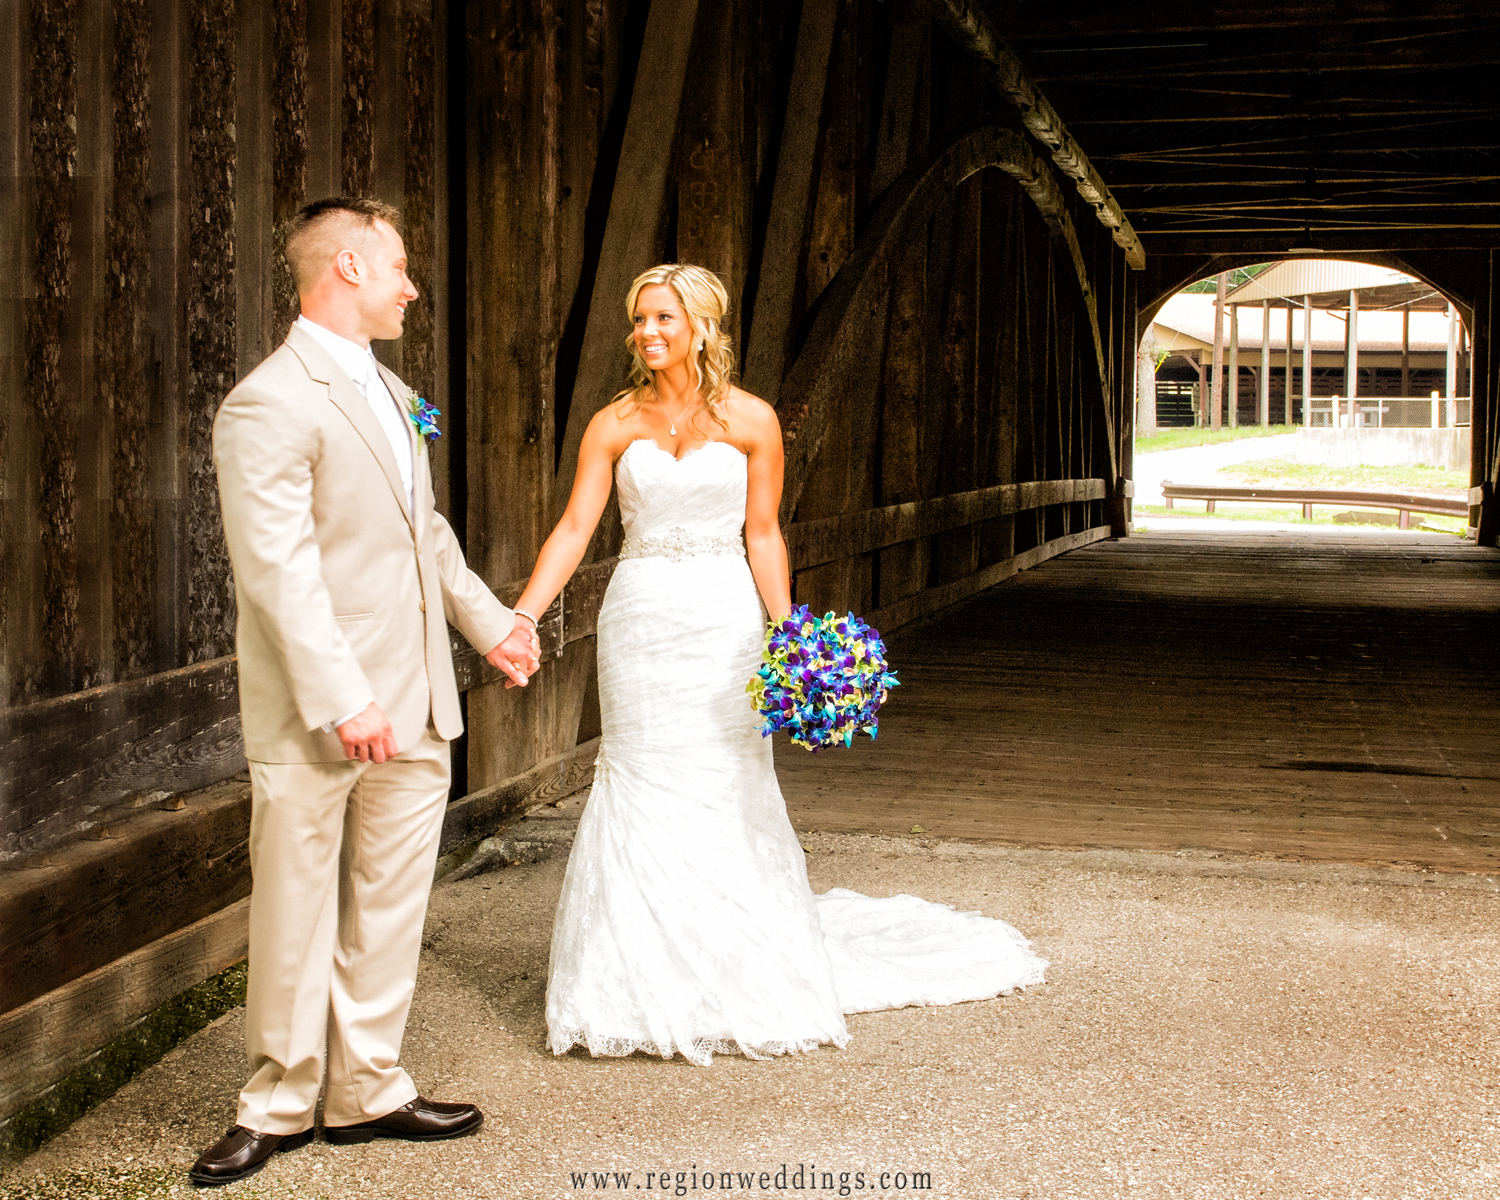 Bride and groom see each other for the first time at The Old Covered Bridge at the Lake County Fairgrounds in Crown Point, Indiana.